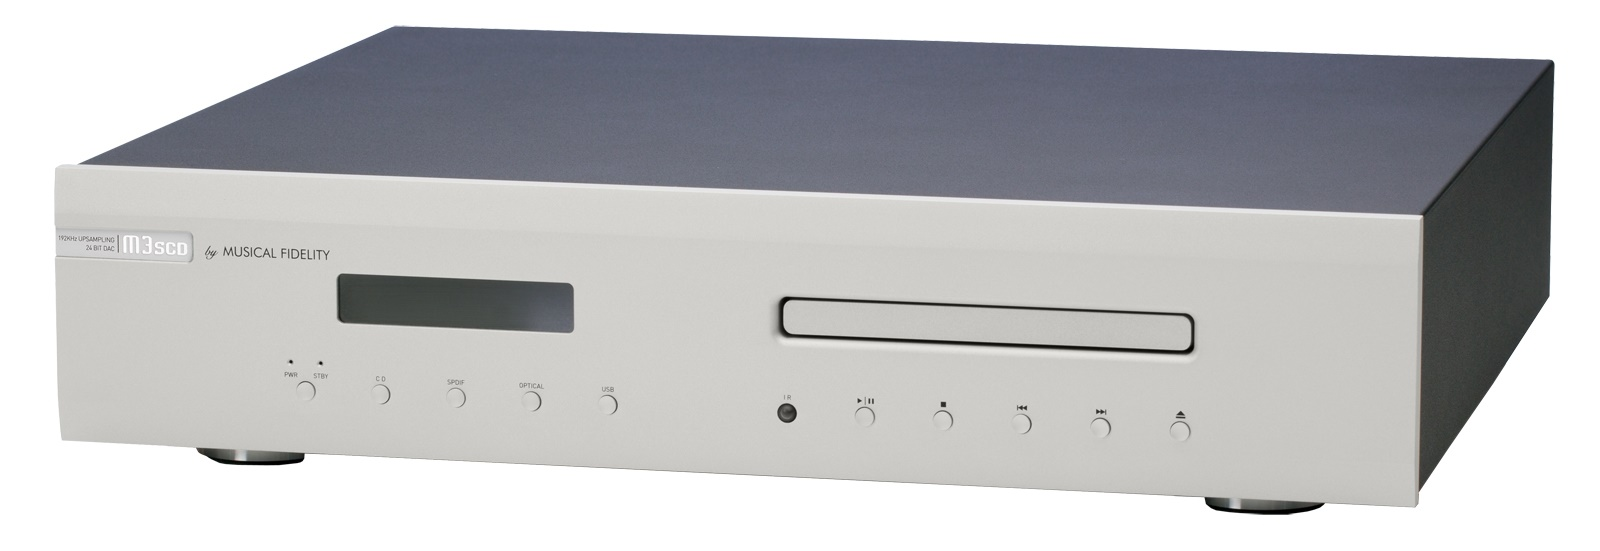 Musical Fidelity M3scd